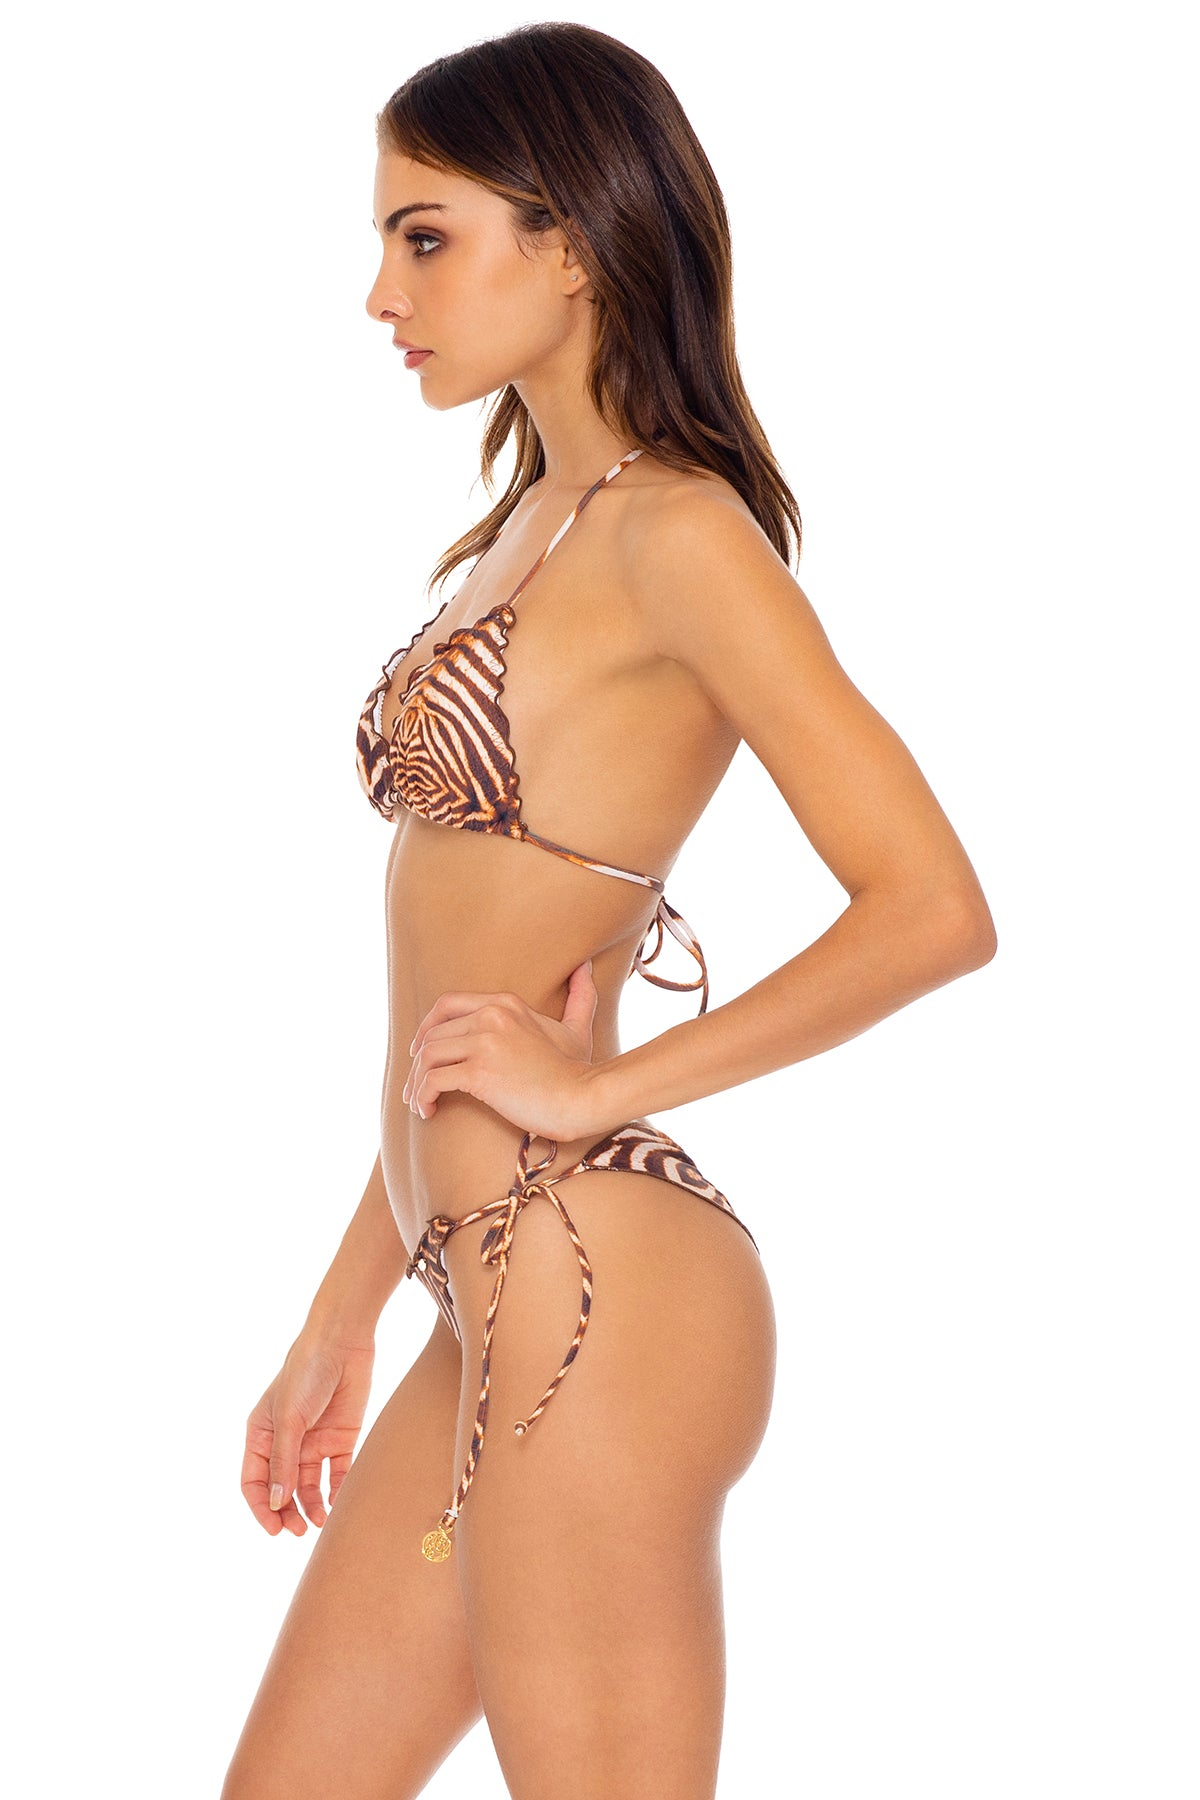 SAFARI DREAMS - Wavey Triangle Top & Wavey Ruched Back Tie Side Bottom • Brown